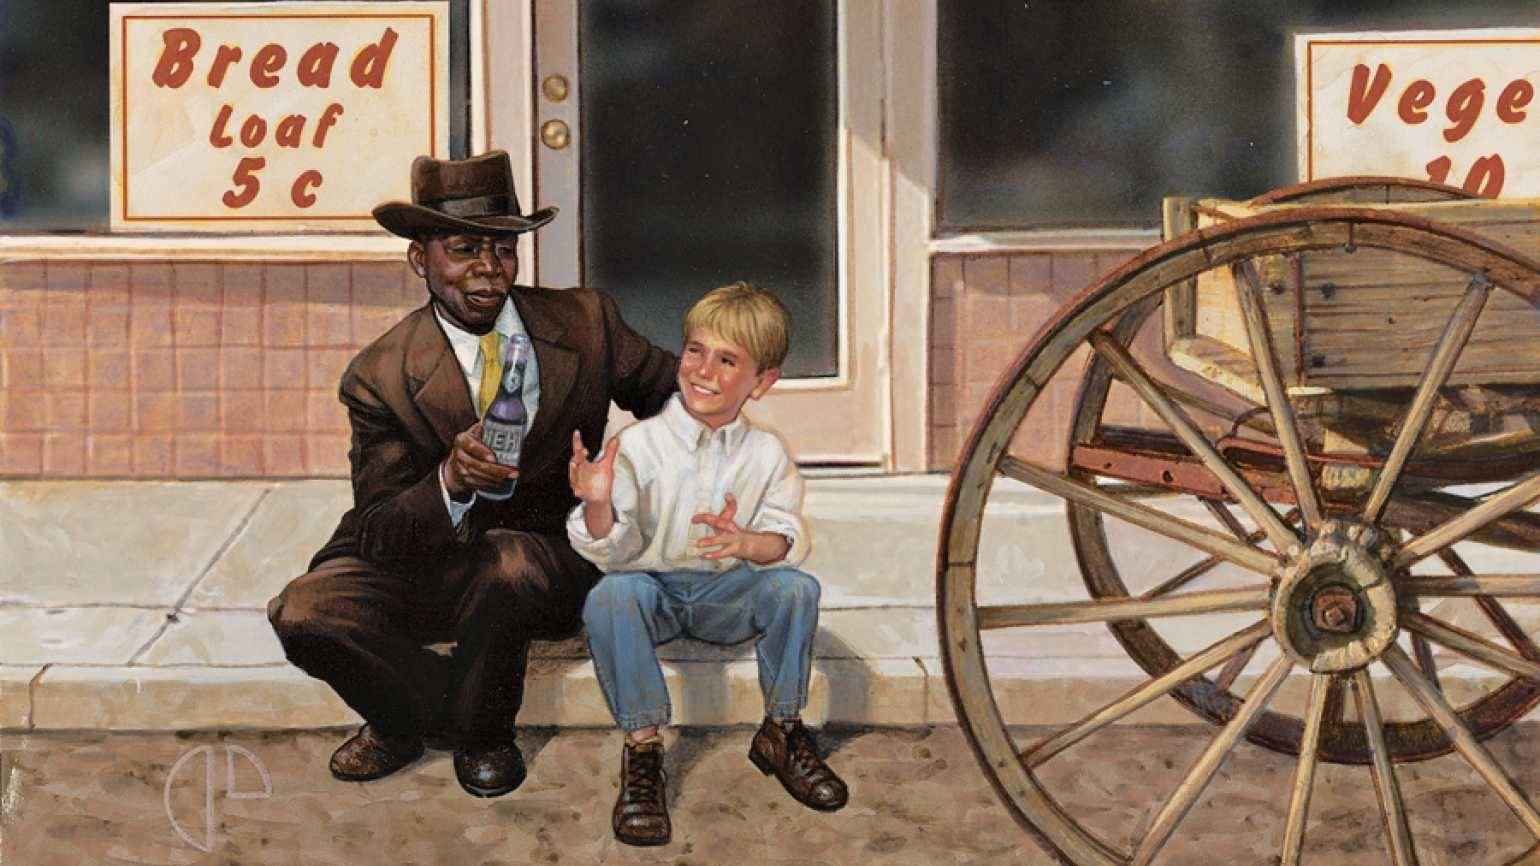 An artist's rendering of Walter P. Smith and King Brooks sitting on a curb